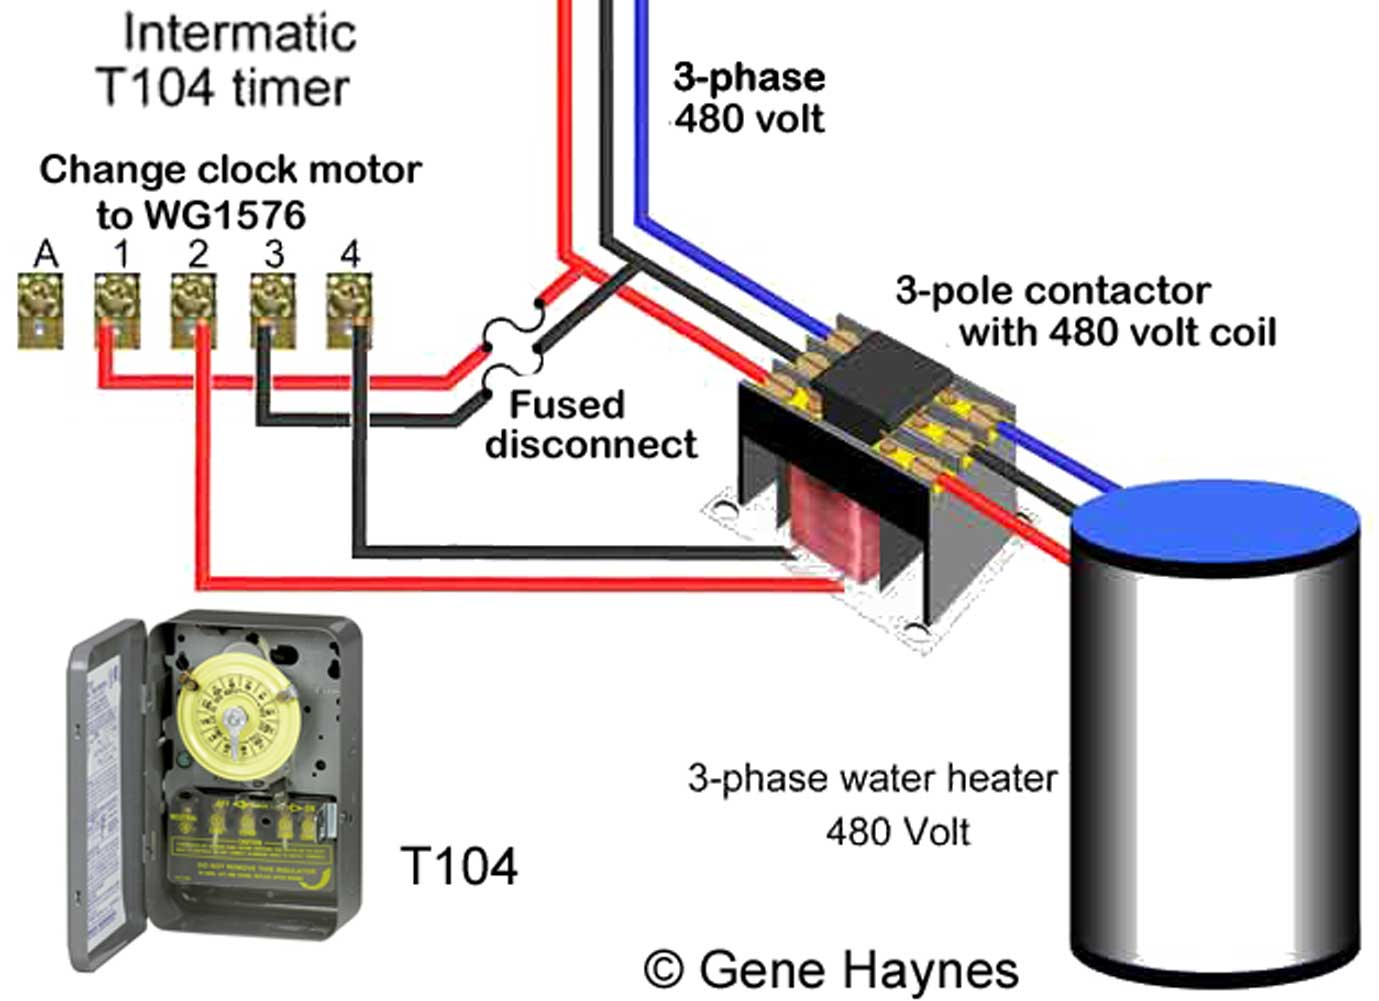 space heaters 3 phase wiring wiring librarycontrol 480 v 3 phase using t104 timer change 240v wg1573 clock motor to